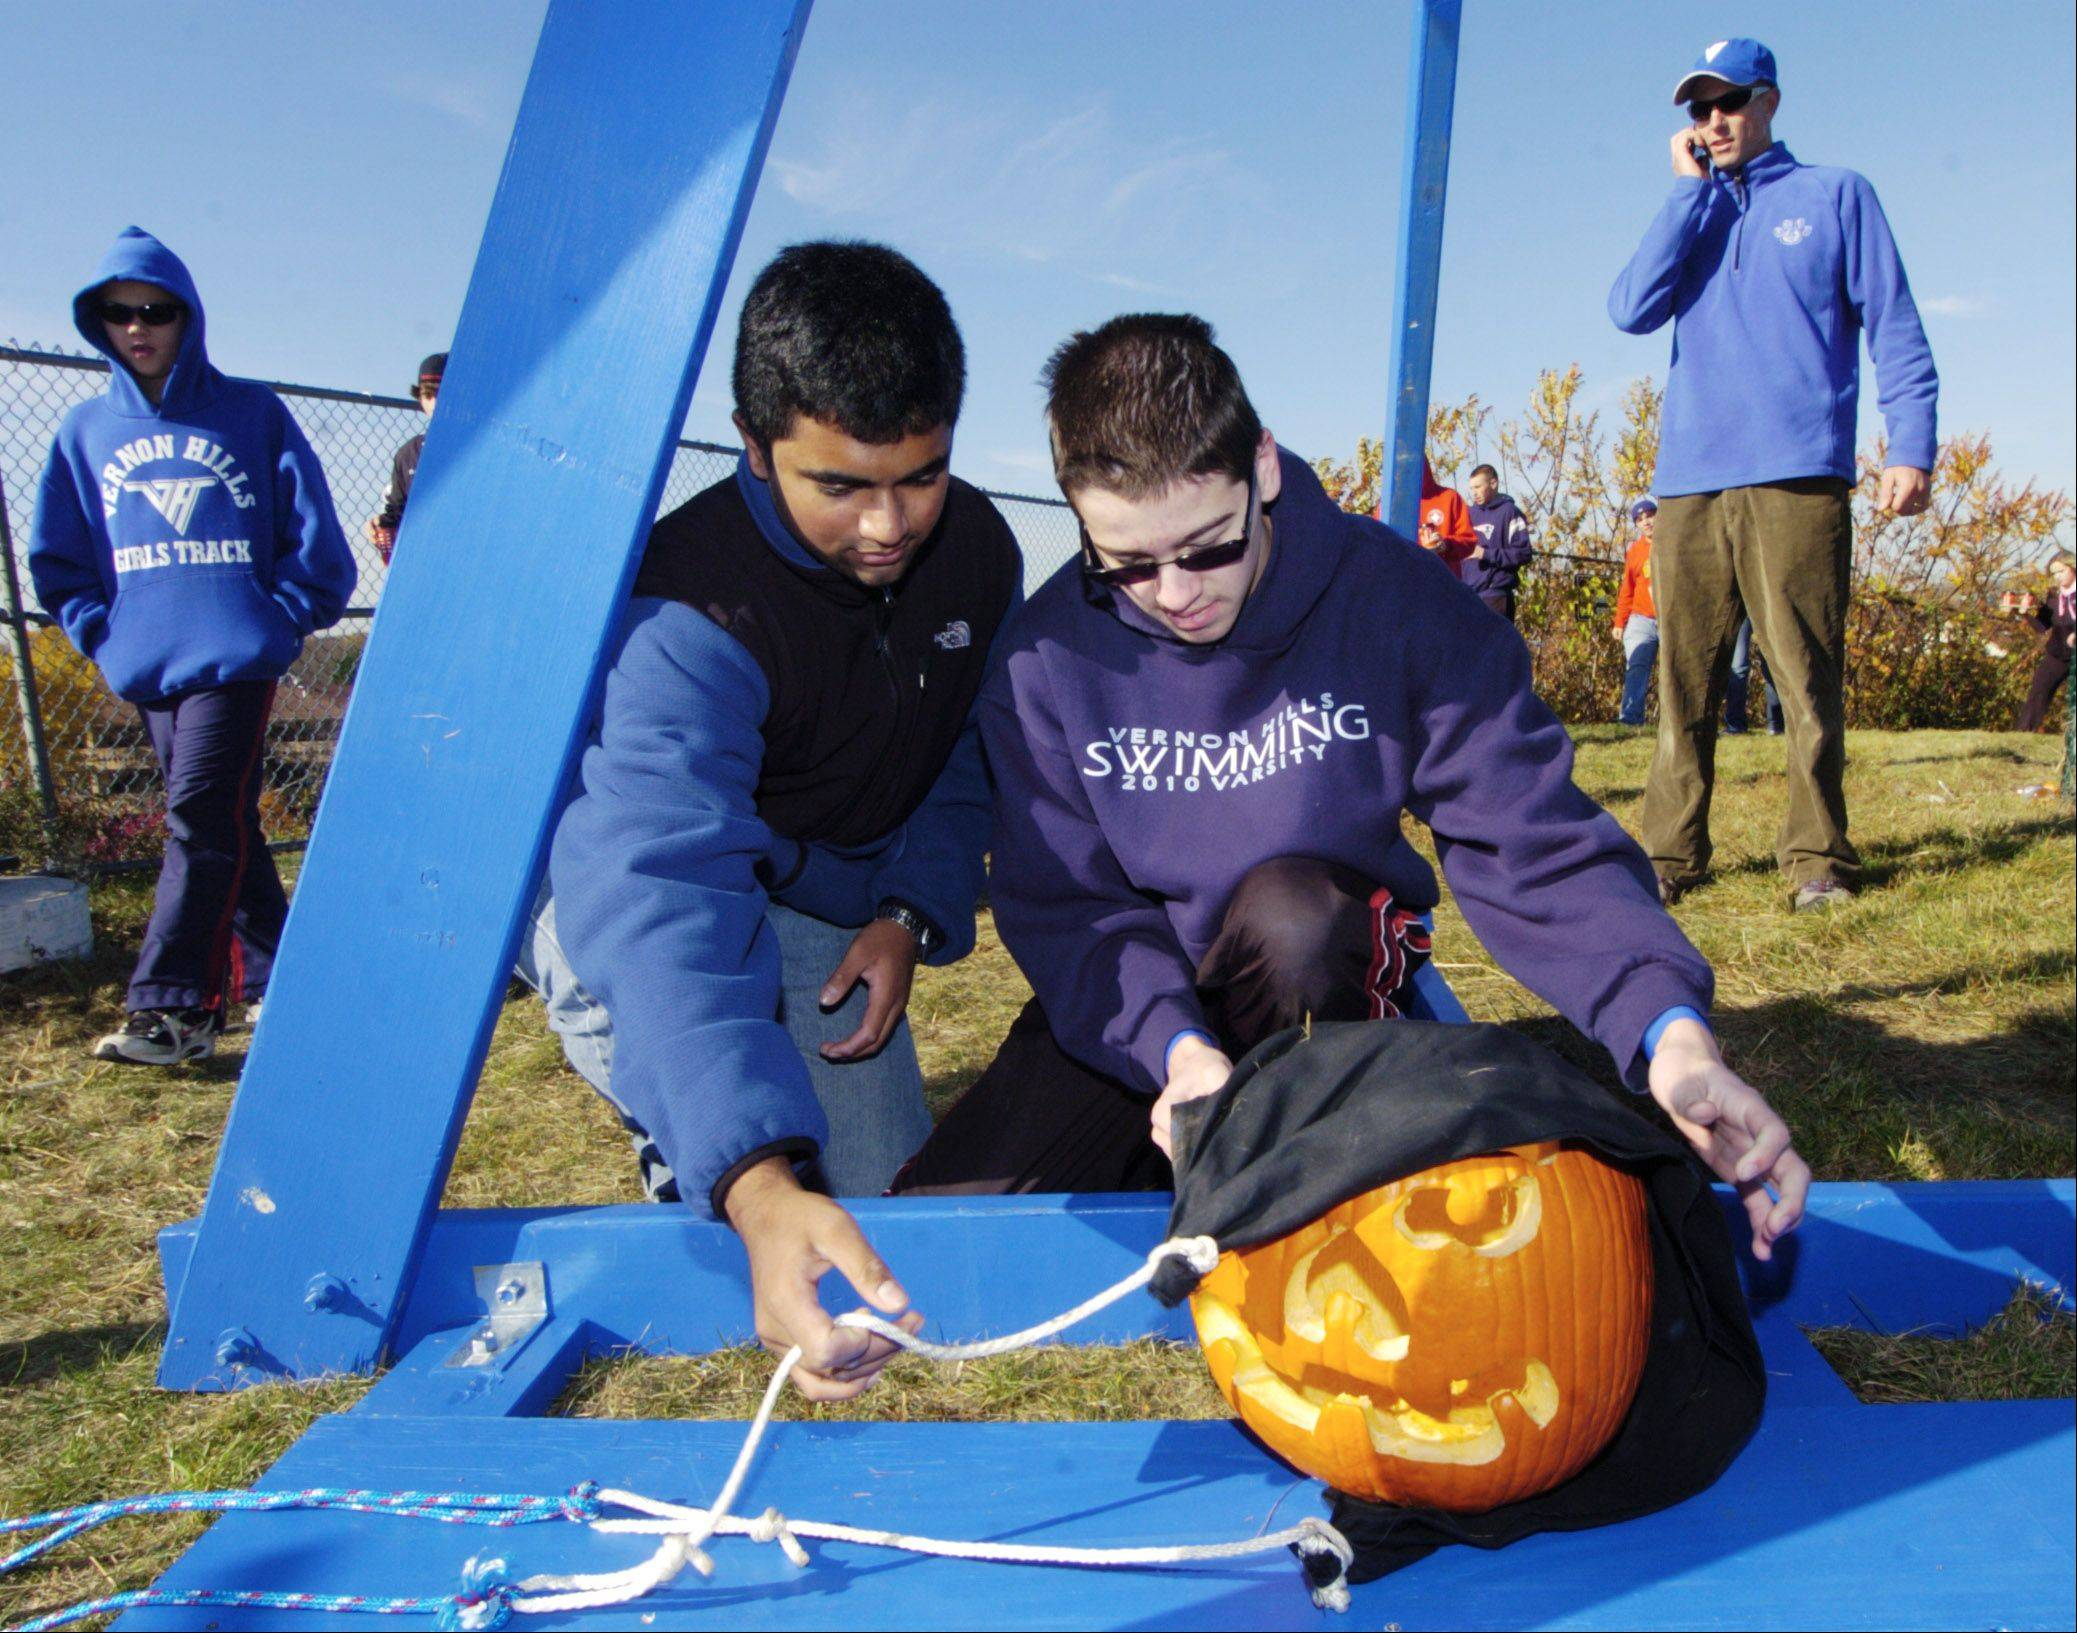 Alex Mathew, left, and Nic McAdams load a jack-o'-lantern onto the trebuchet during a previous pumpkin launch at Century Park in Vernon Hills.